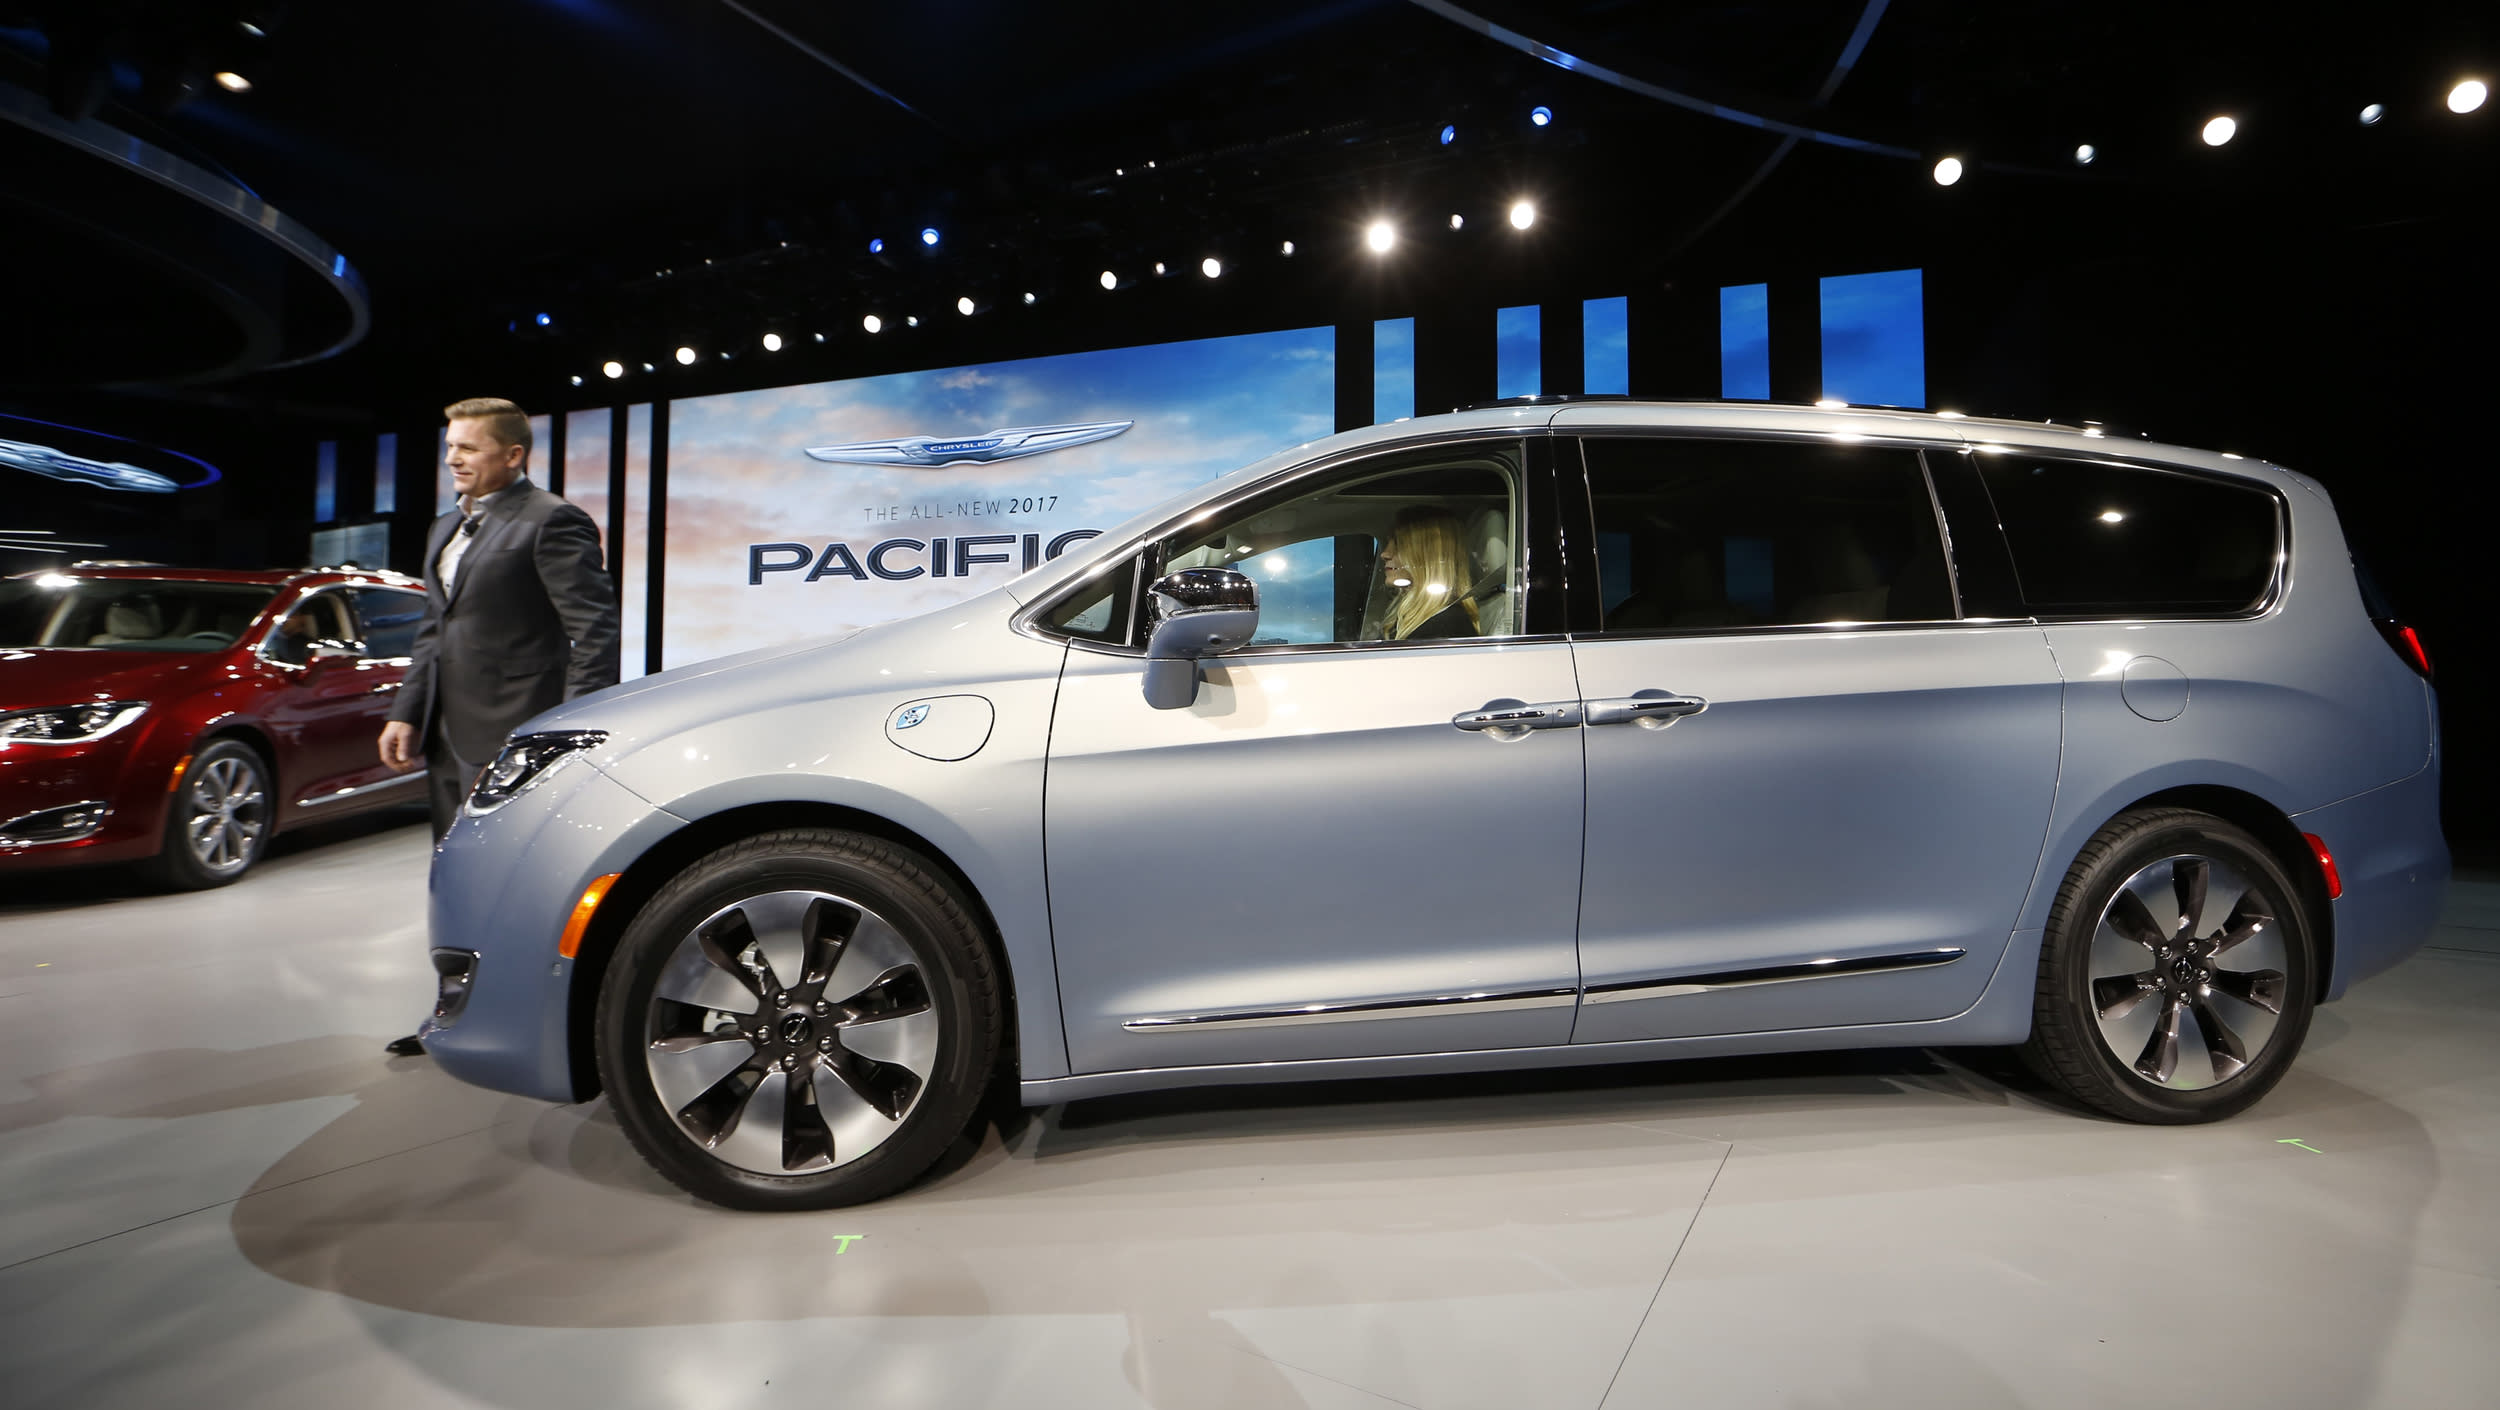 Timothy Kuniskis, Head of Passenger Car Brands - Dodge, SRT, Chrysler and FIAT, FCA - North America, introduces the 2017 Chrysler Pacifica minivan at the North American International Auto Show in Detroit, January 11, 2016.   REUTERS/Mark Blinch